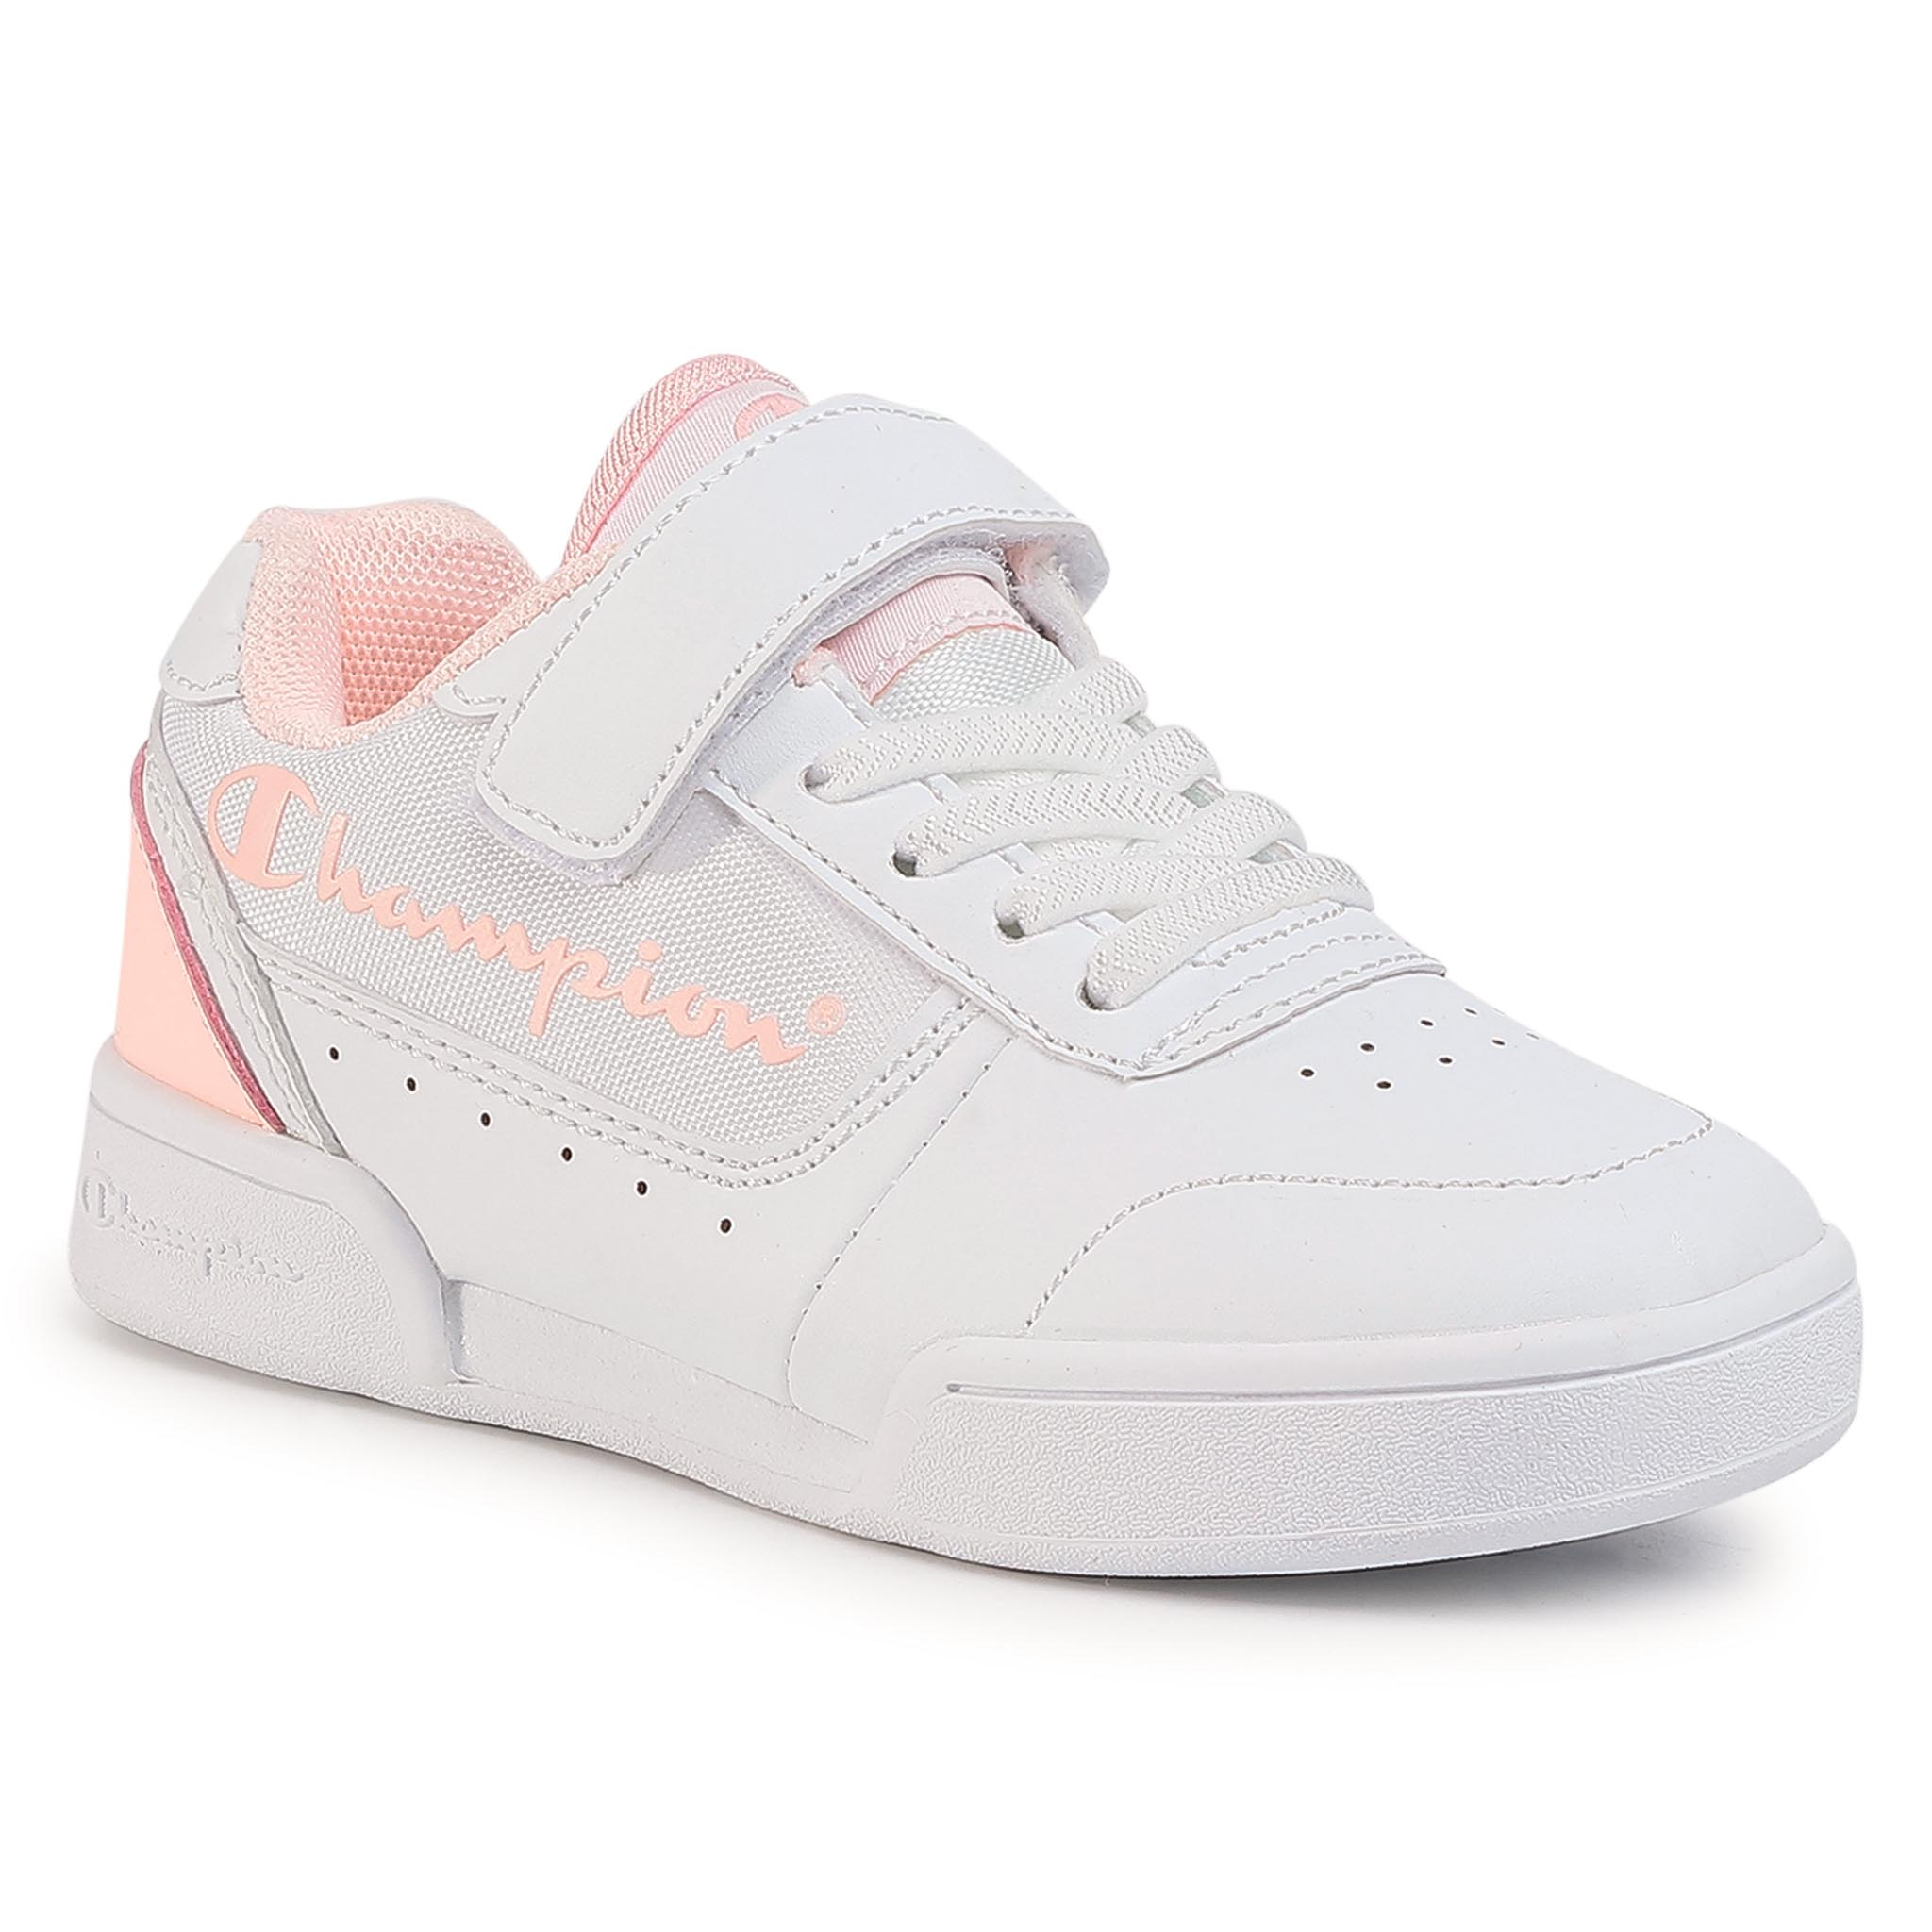 Sneakers CHAMPION - Court Champ G Ps S31922-S20-WW001 Wht